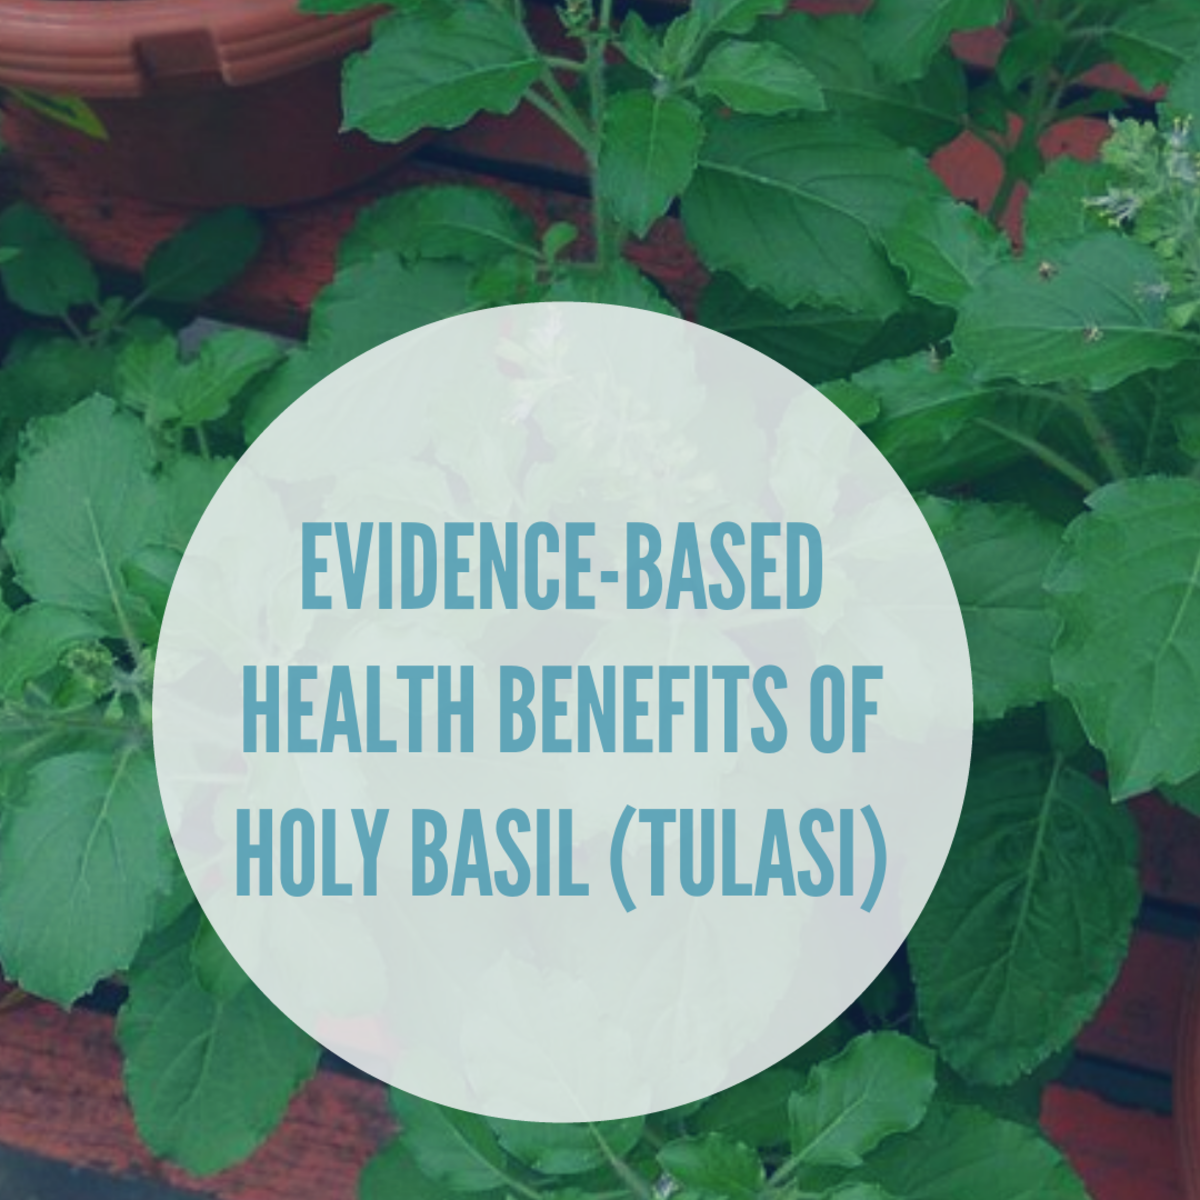 Evidence based benefits of holy basil or tulasi